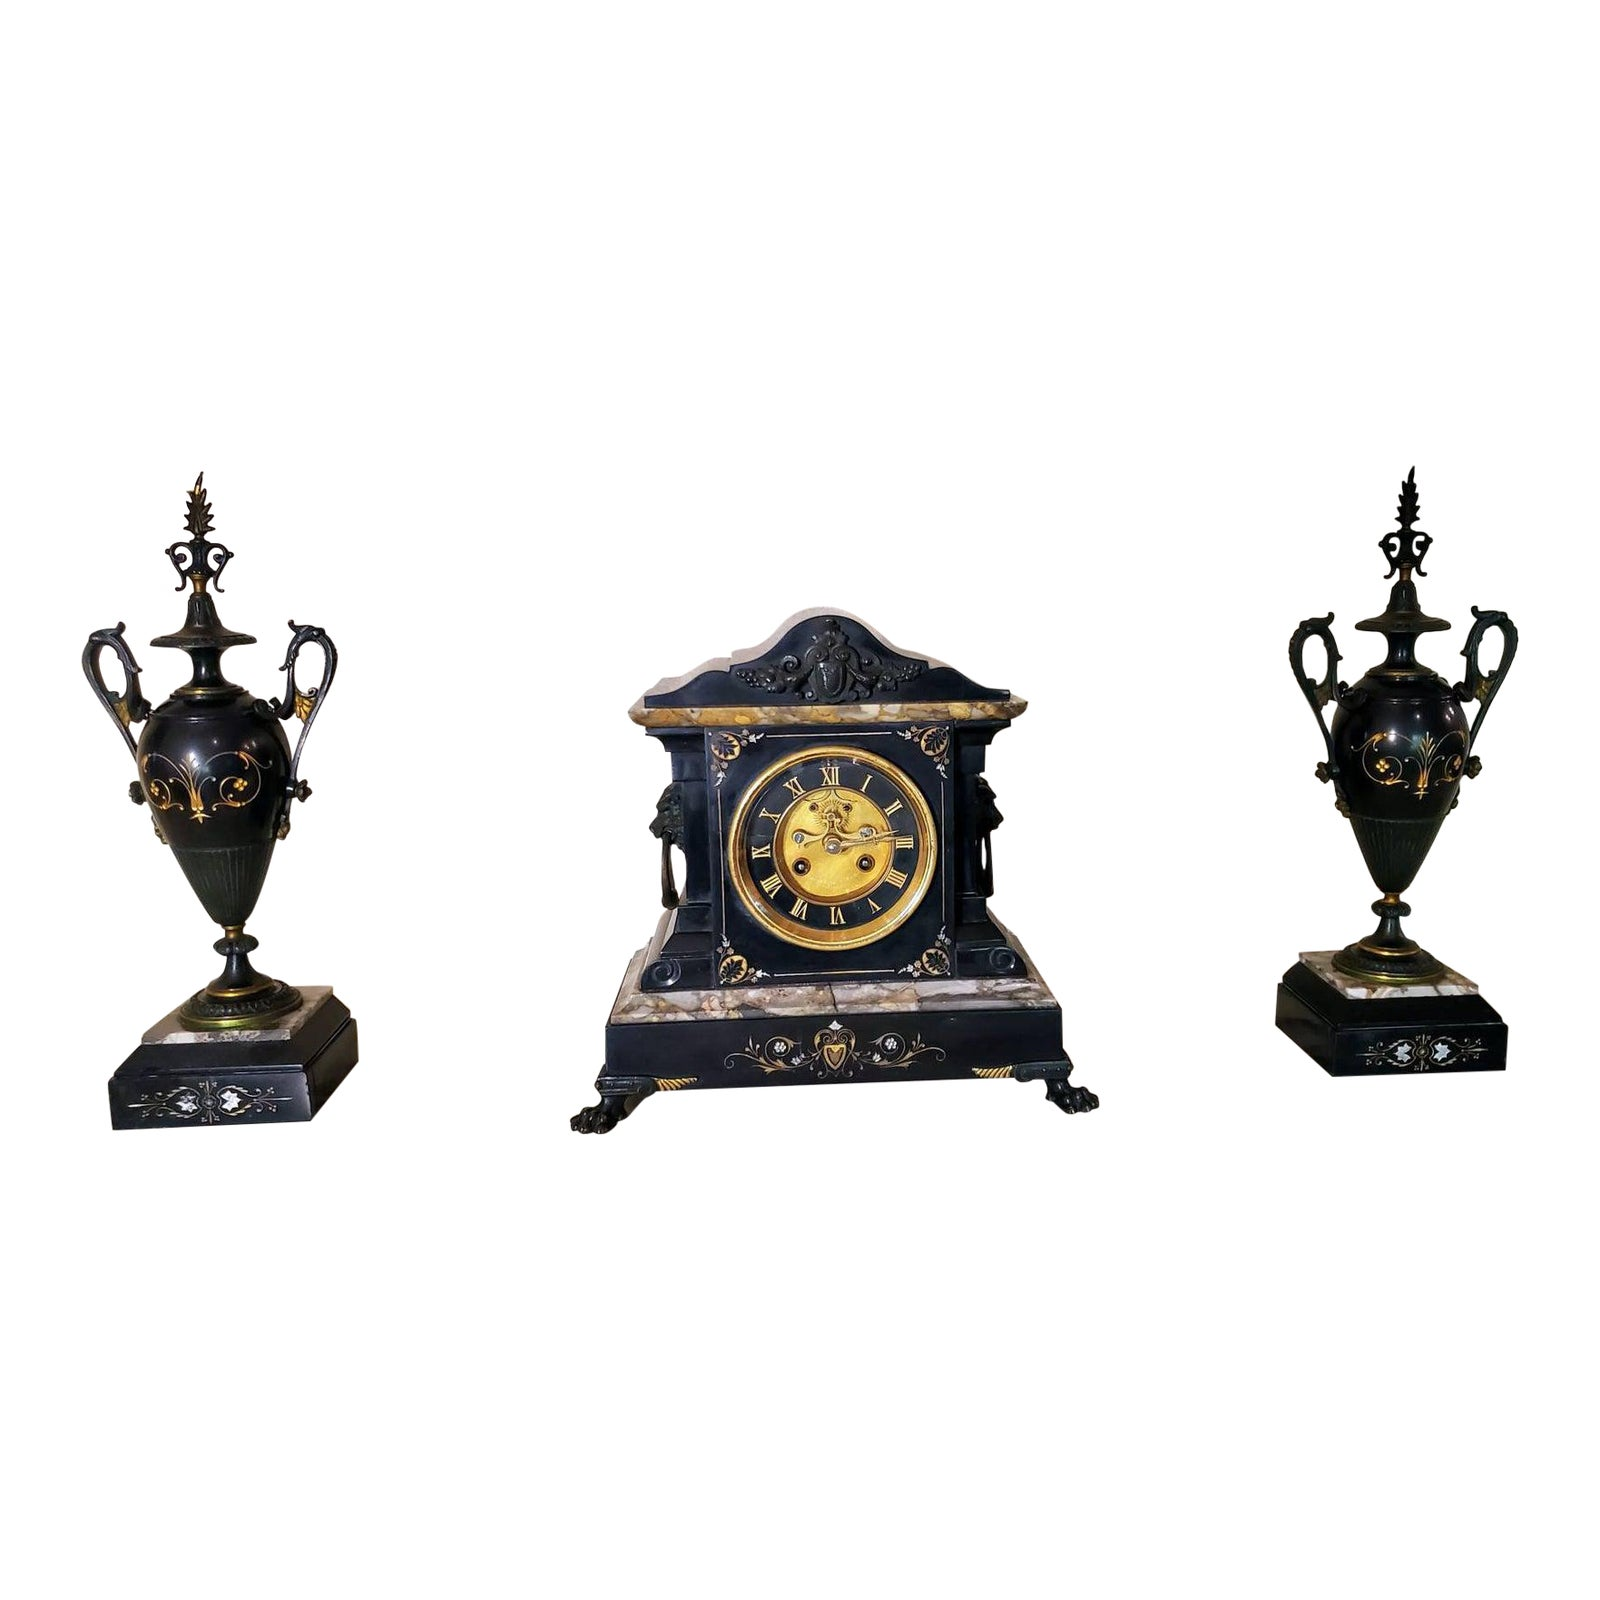 French Neoclassical Revival Mantel Clock Urn Garniture Set Chairish